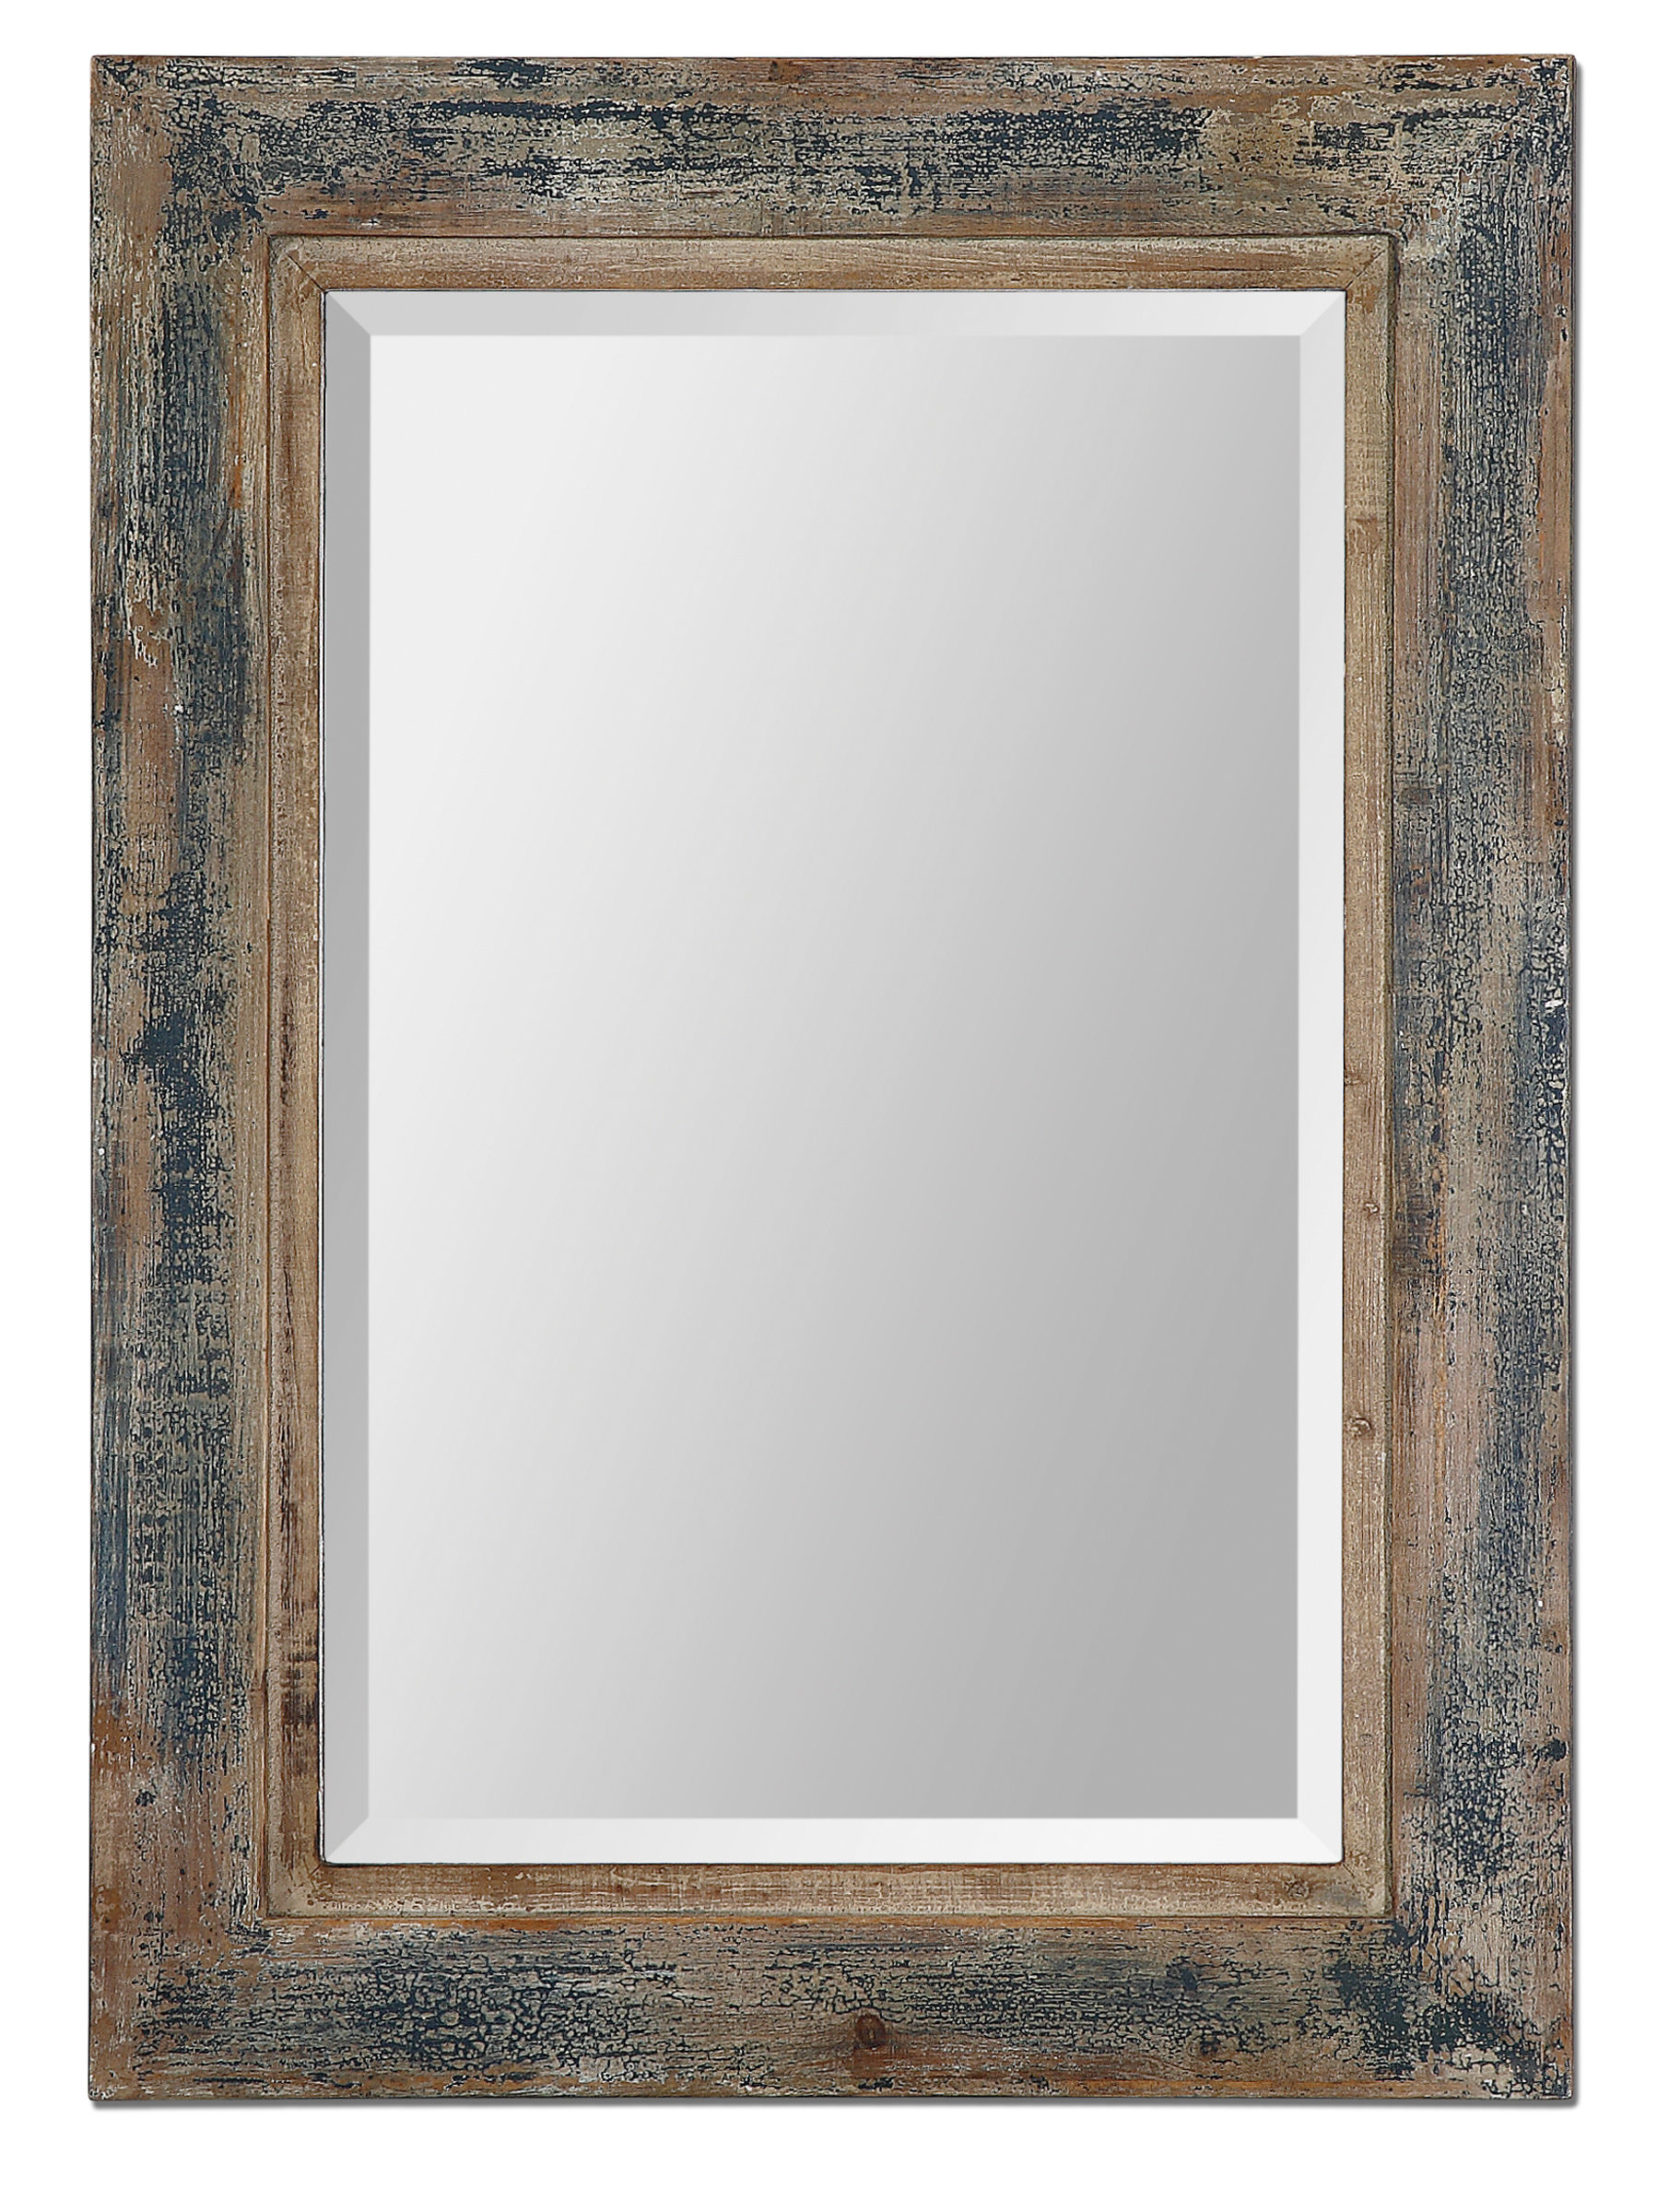 Modern & Contemporary Framed Bathroom Mirrors | Allmodern Intended For Caja Rectangle Glass Frame Wall Mirrors (View 14 of 30)